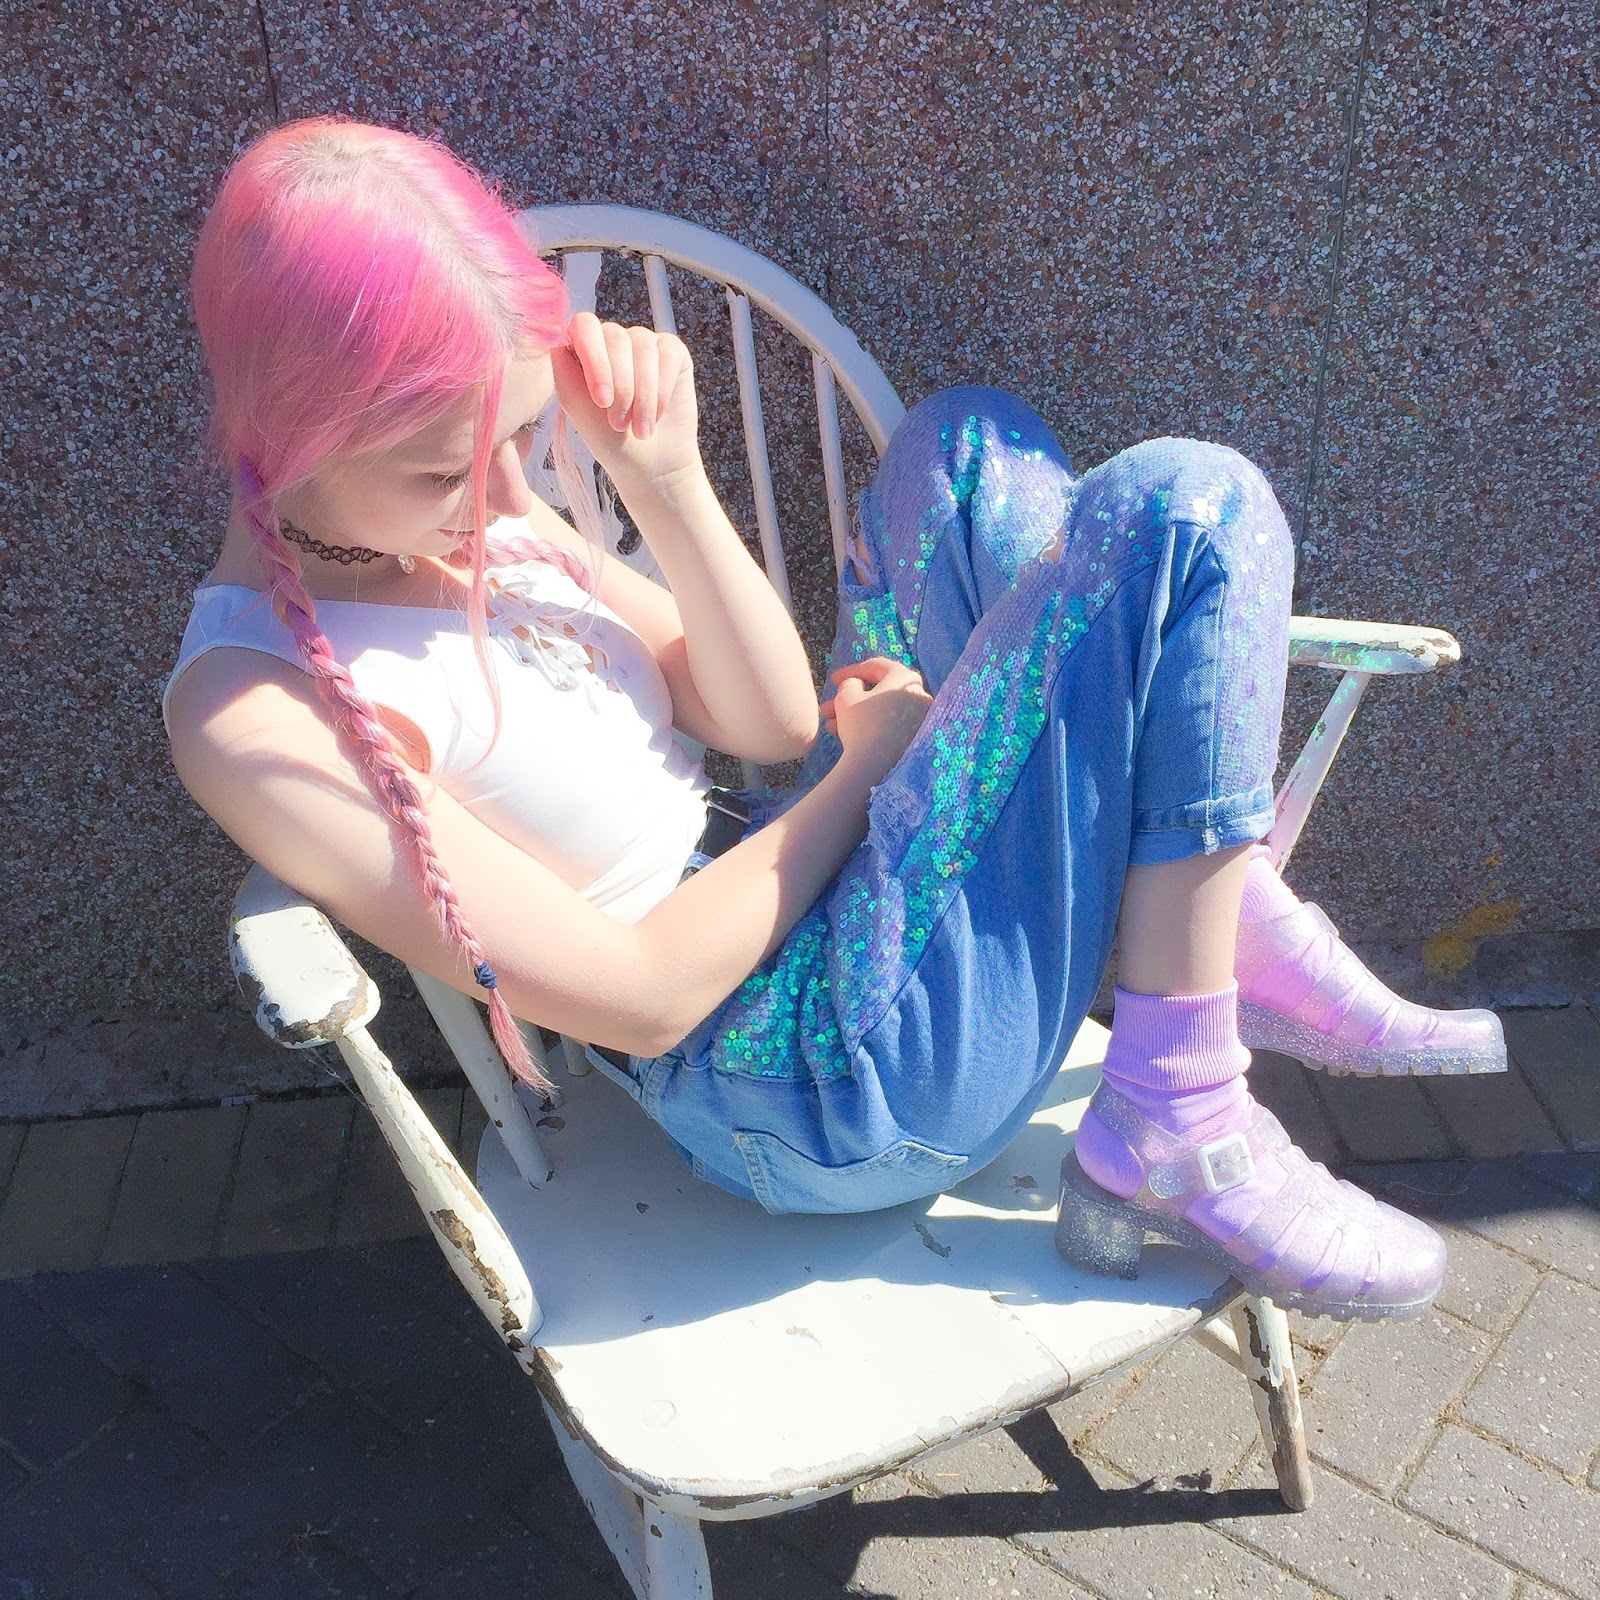 187cd53096c17 LACE UP CROP TOP TOPSHOP SEQUIN MERMAID JEANS  TOPSHOP PINK SOCKS   WE LOVE  COLOURS GLITTER JELLIES  JUJU FOOTWEAR available   TOPSHOP   OFFICE